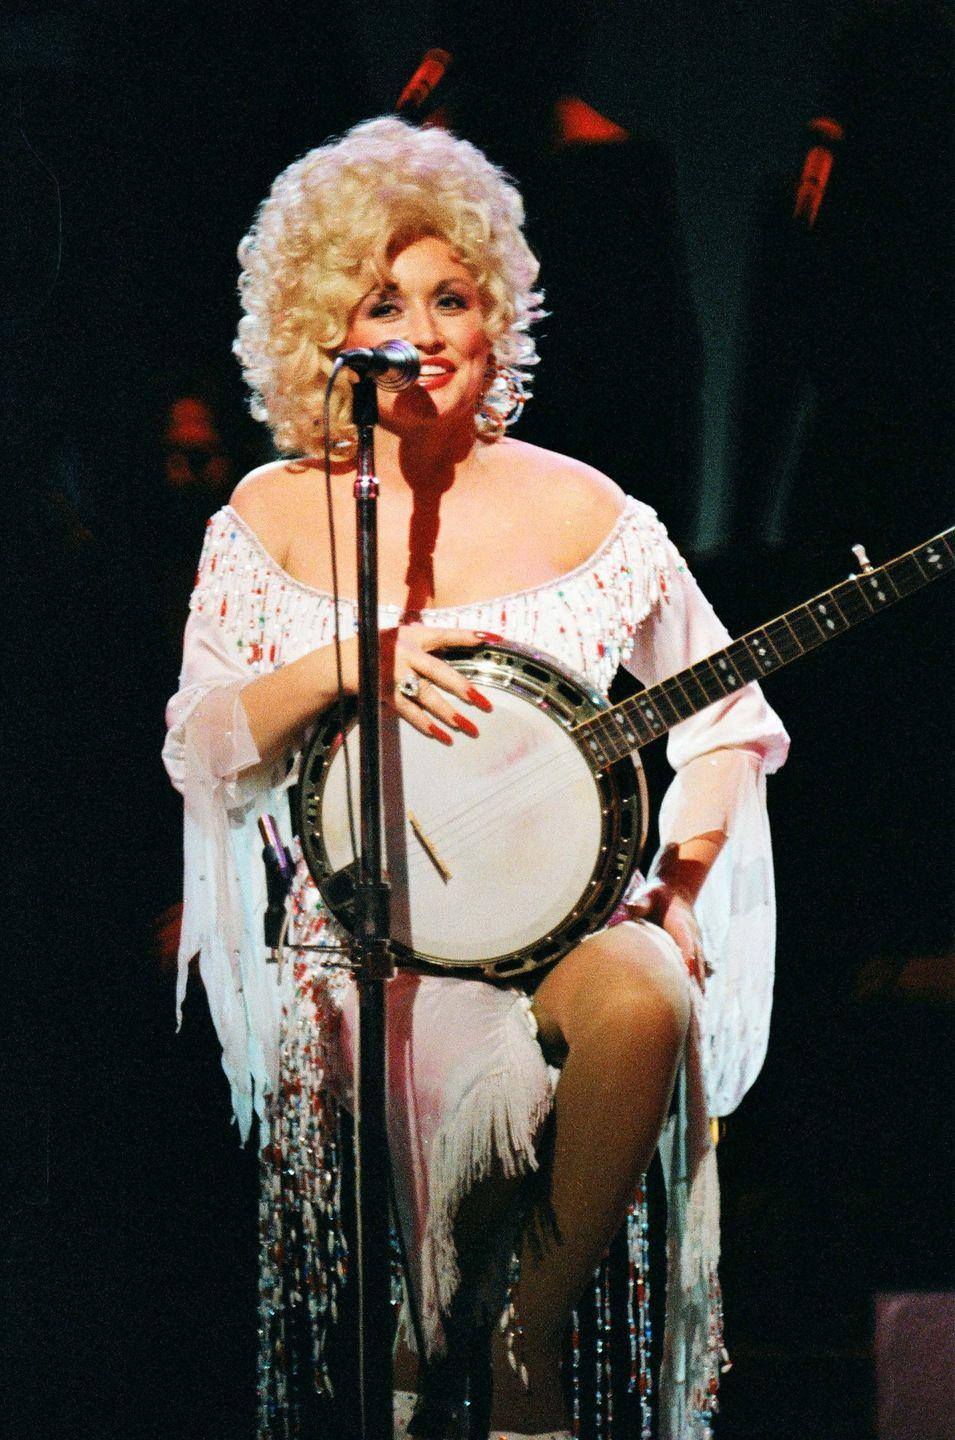 """<p>Parton plays at The Dominion Theatre in London all dressed up in colorful, beaded fringe. By this time in 1983, Parton had extended her fanbase worldwide after collaborations with singers like Olivia Newton-John, Emmylou Harris, and Linda Ronstadt. However, her fame was cemented after starring alongside Jane Fonda and Lily Tomlin in """"9 to 5.""""</p>"""